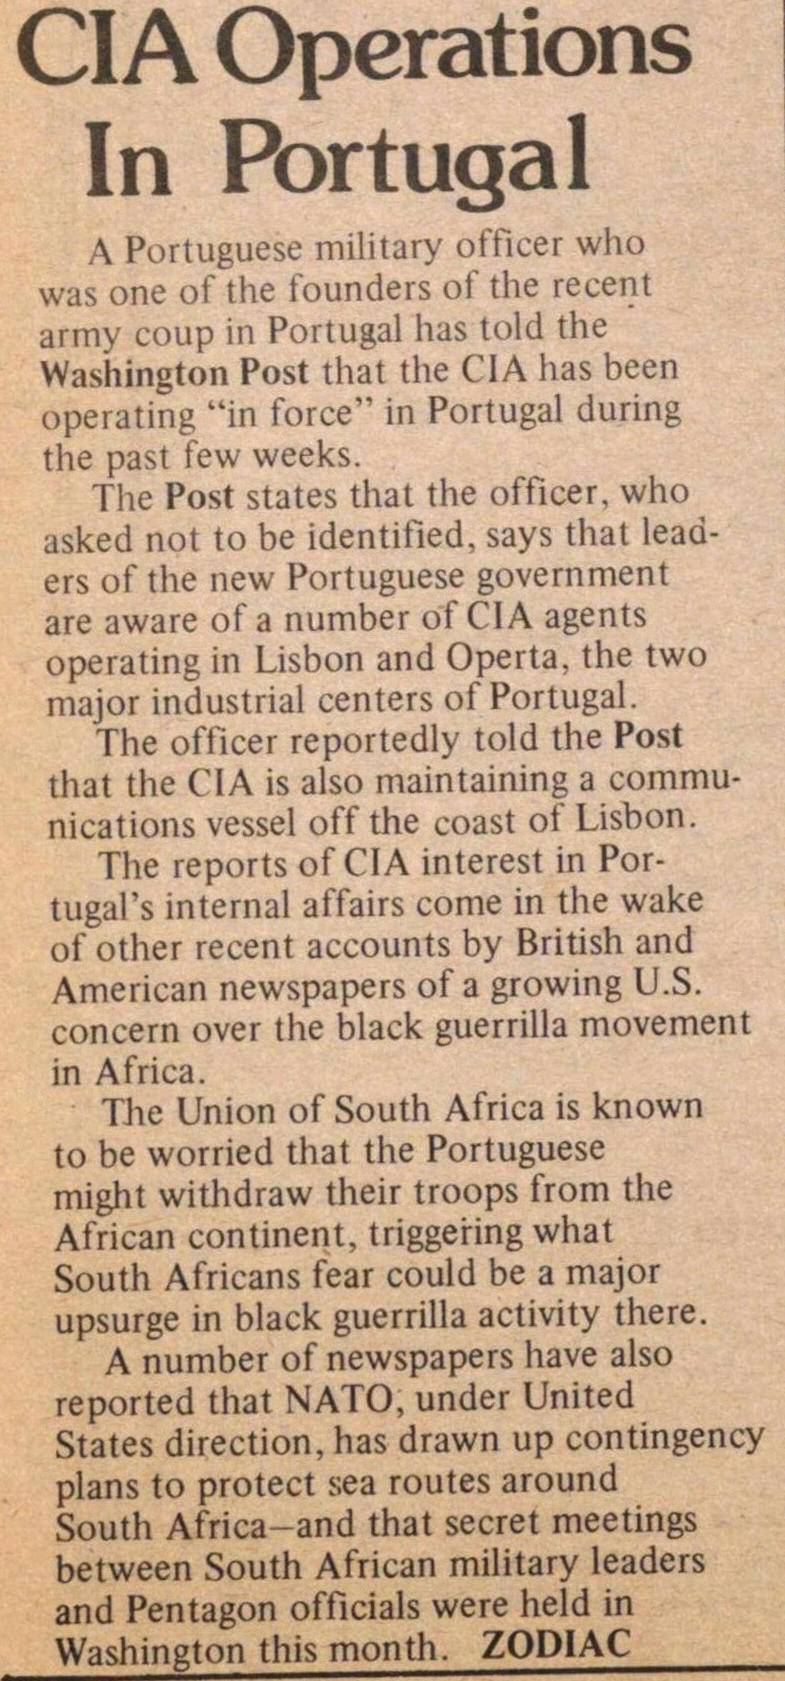 Cia Operations In Portugal image